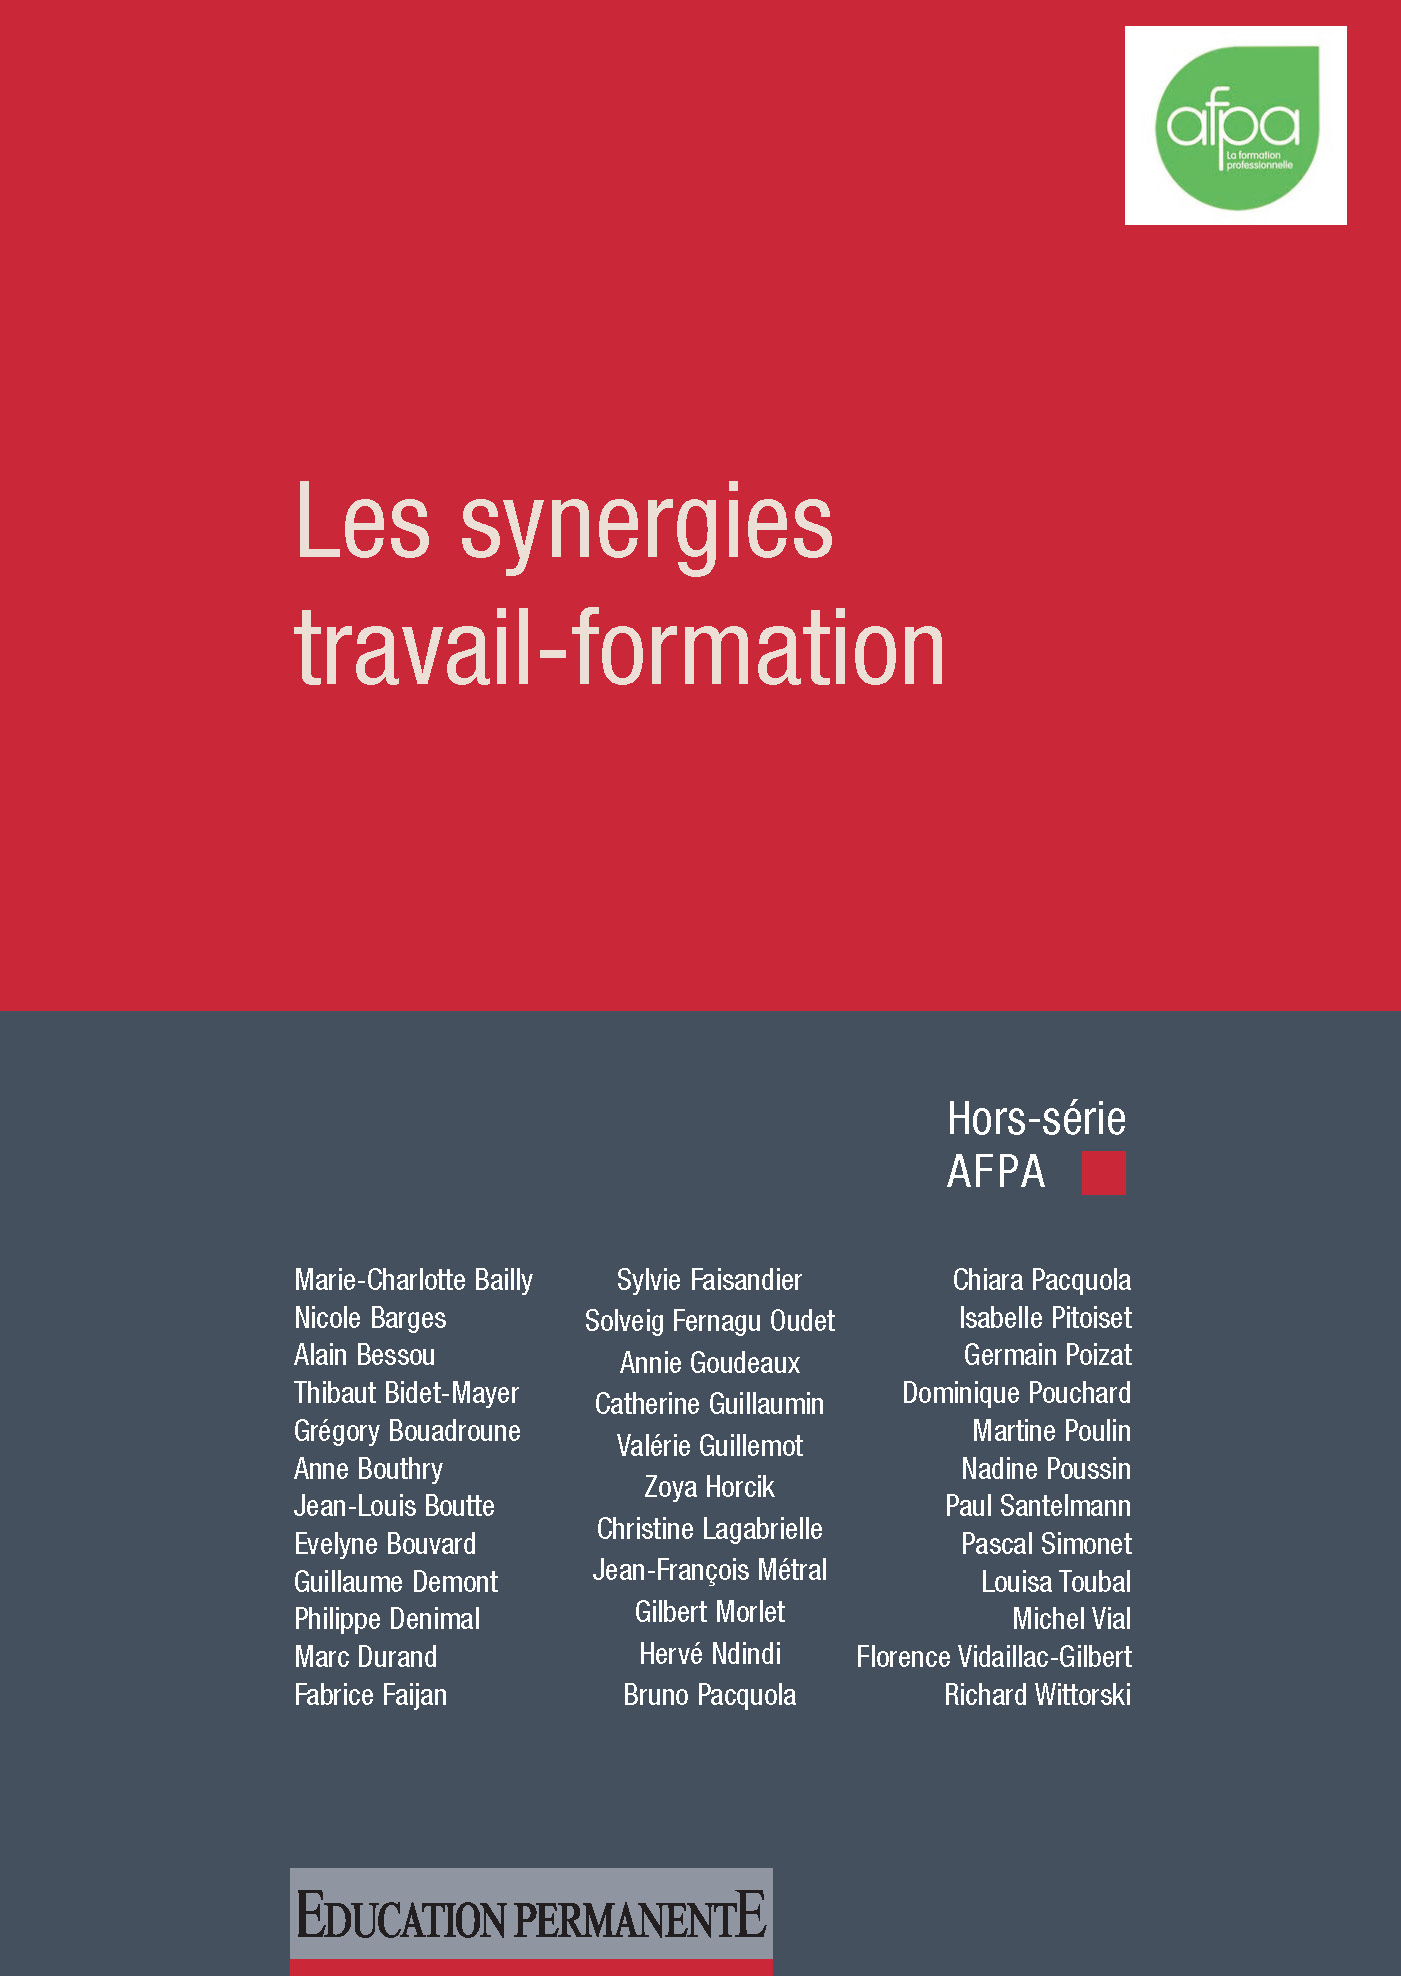 Les synergies travail-formation (hors série AFPA 2014)